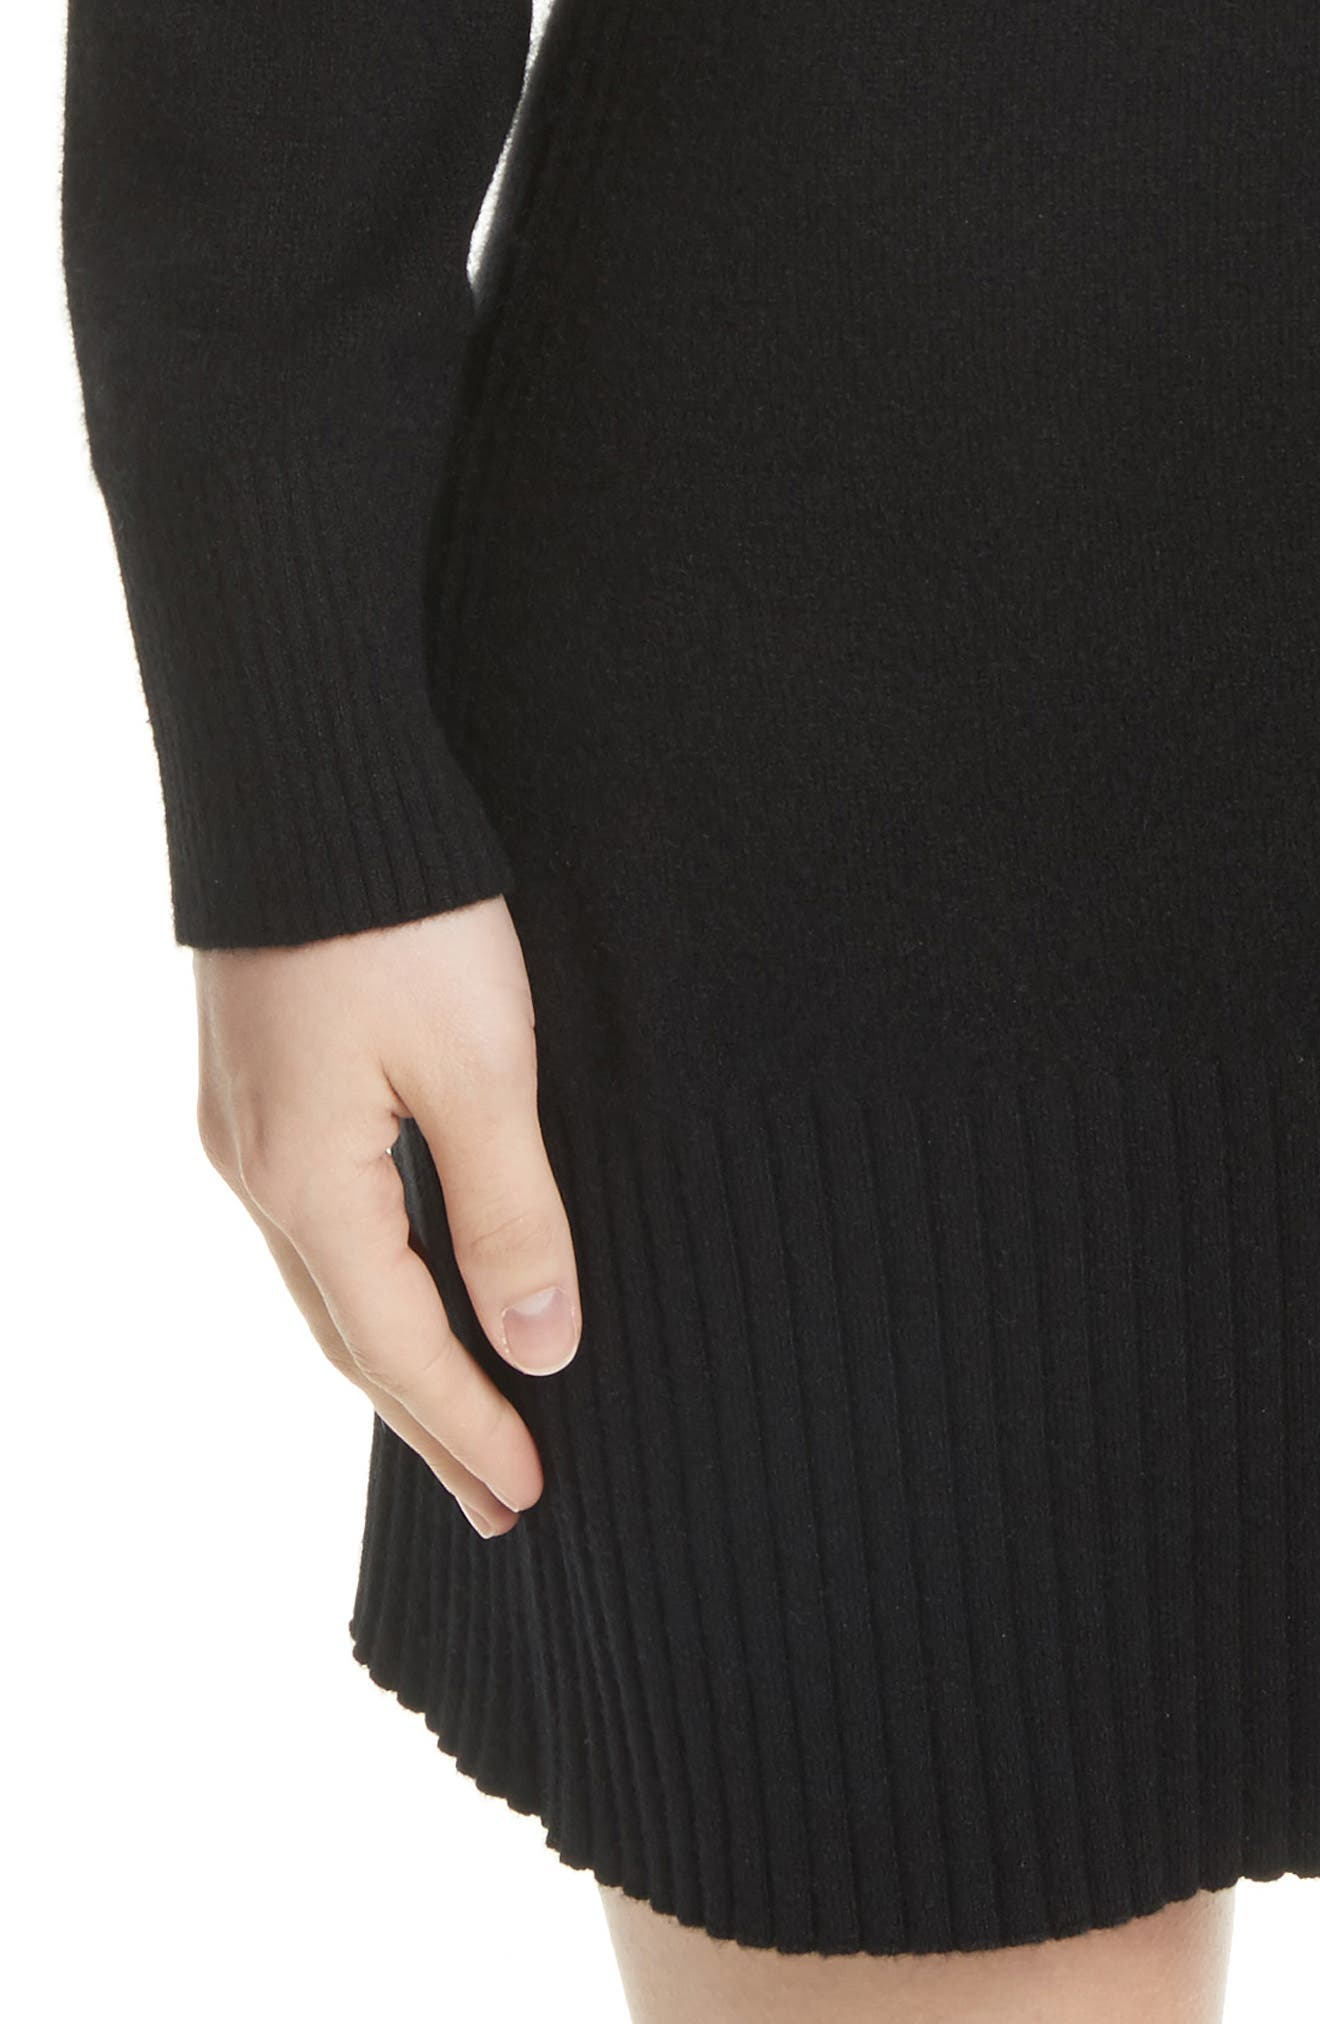 Turtleneck Cashmere Sweater Dress,                             Alternate thumbnail 4, color,                             001